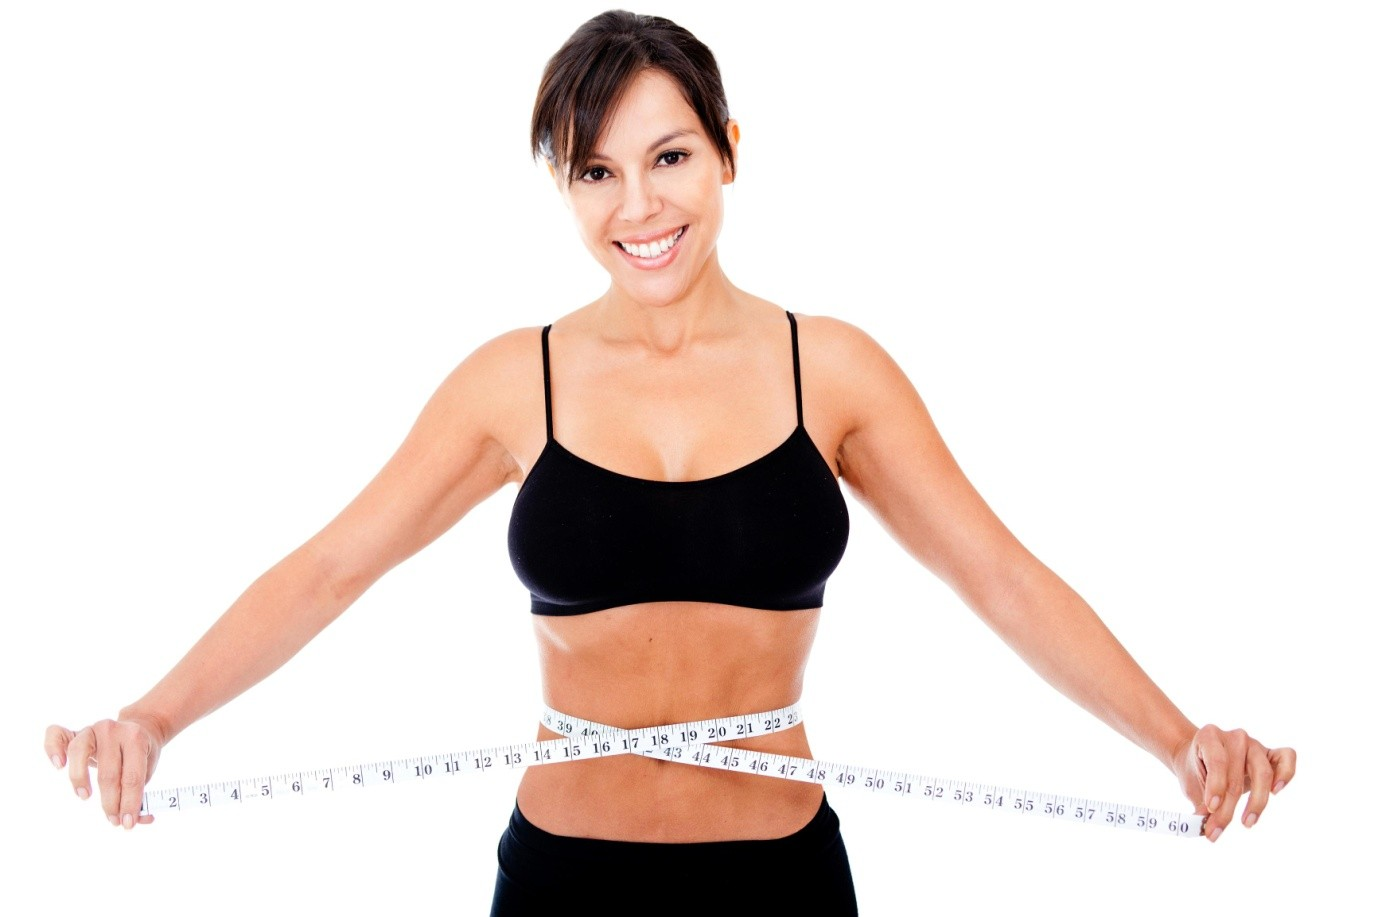 BMI - Clenbuterol for Weight Loss - How it Works, Benefits, and Drawbacks